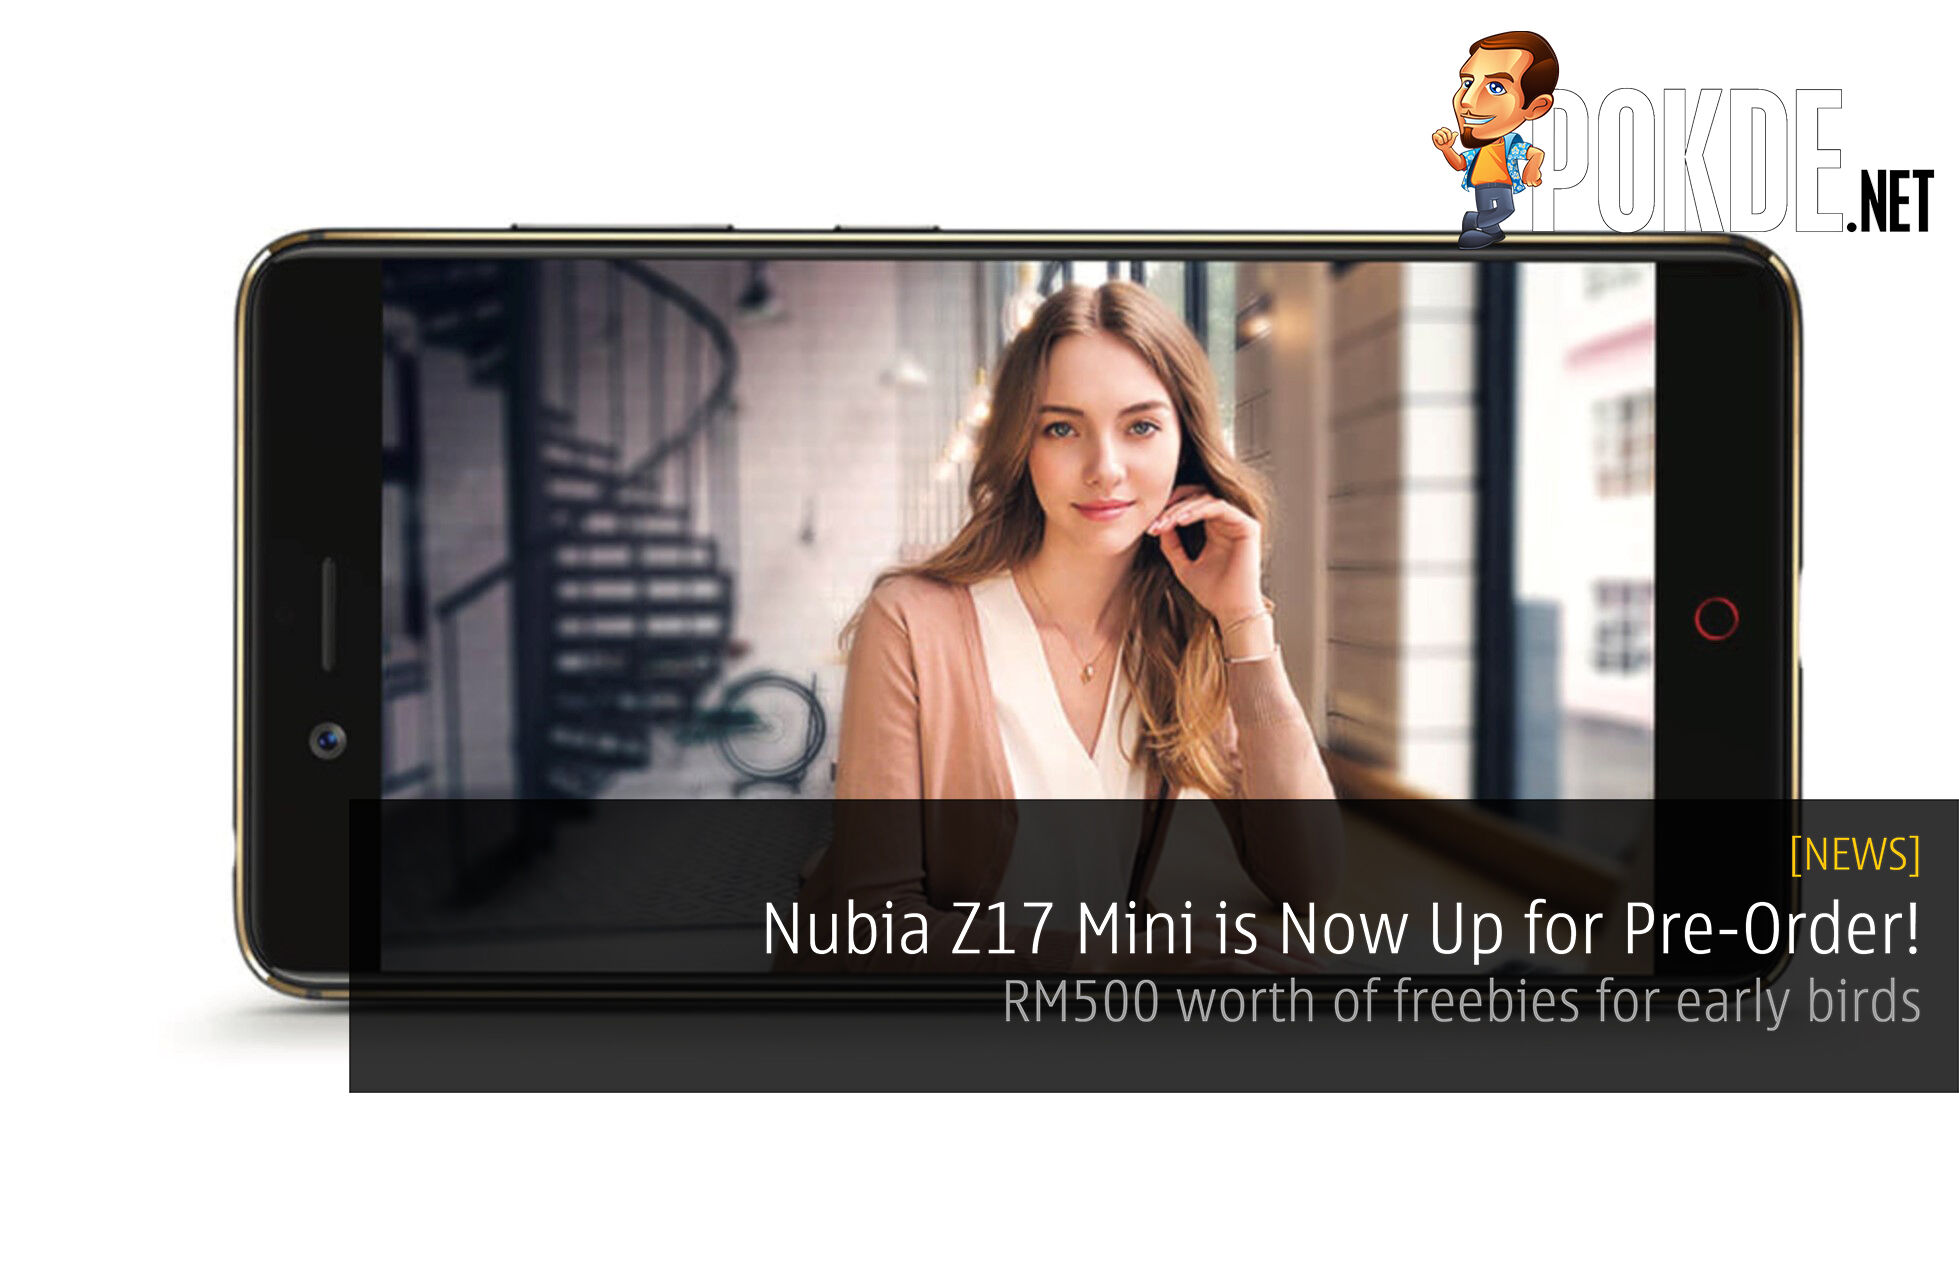 Nubia Z17 Mini is Now Up for Pre-Order! - RM500 worth of freebies for early birds 22